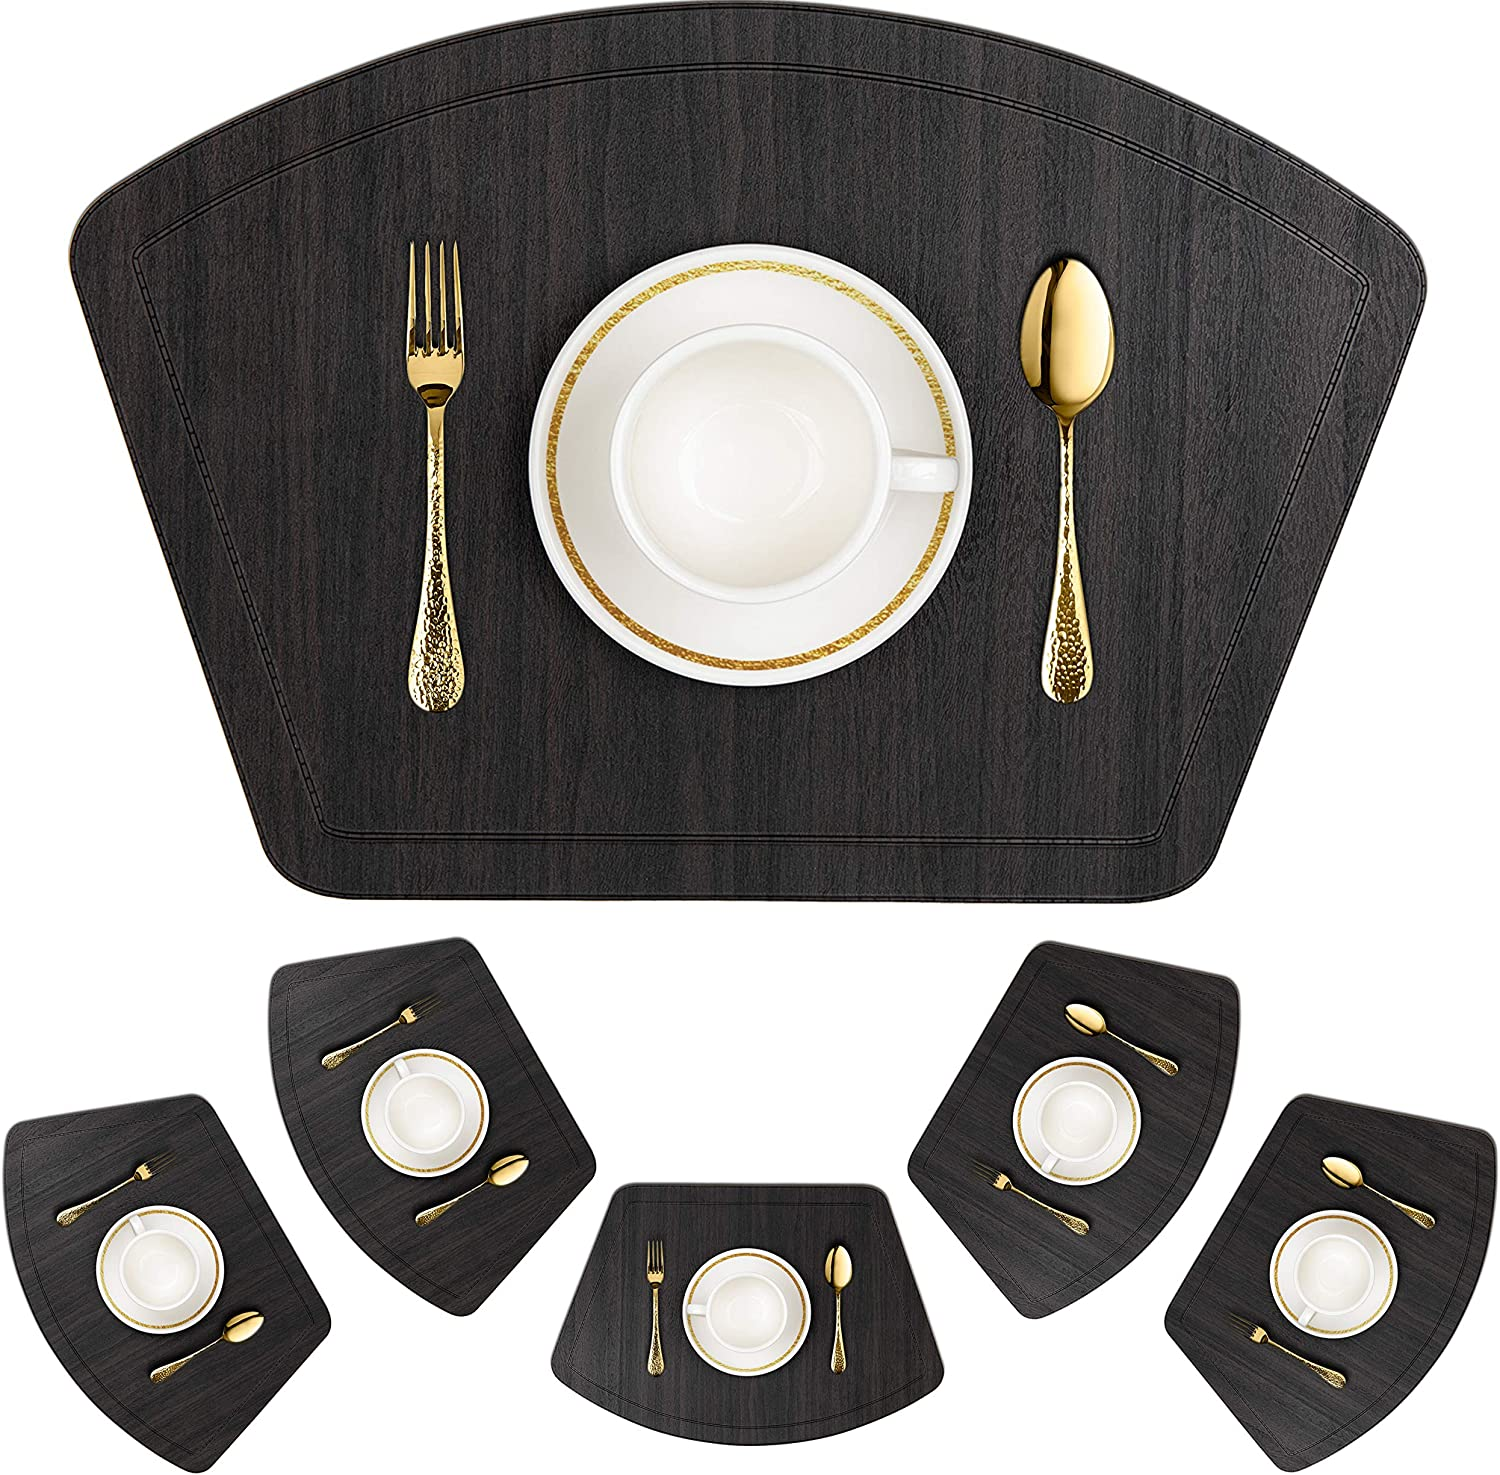 IMMOKAZ Round Placemat for Dining Heat Insulation Stain Resistant Non-Slip Waterproof Washable Wipe Clean PU Fan Shape Wedge Kitchen Table Mat Set (6, Pu_Wood Black)